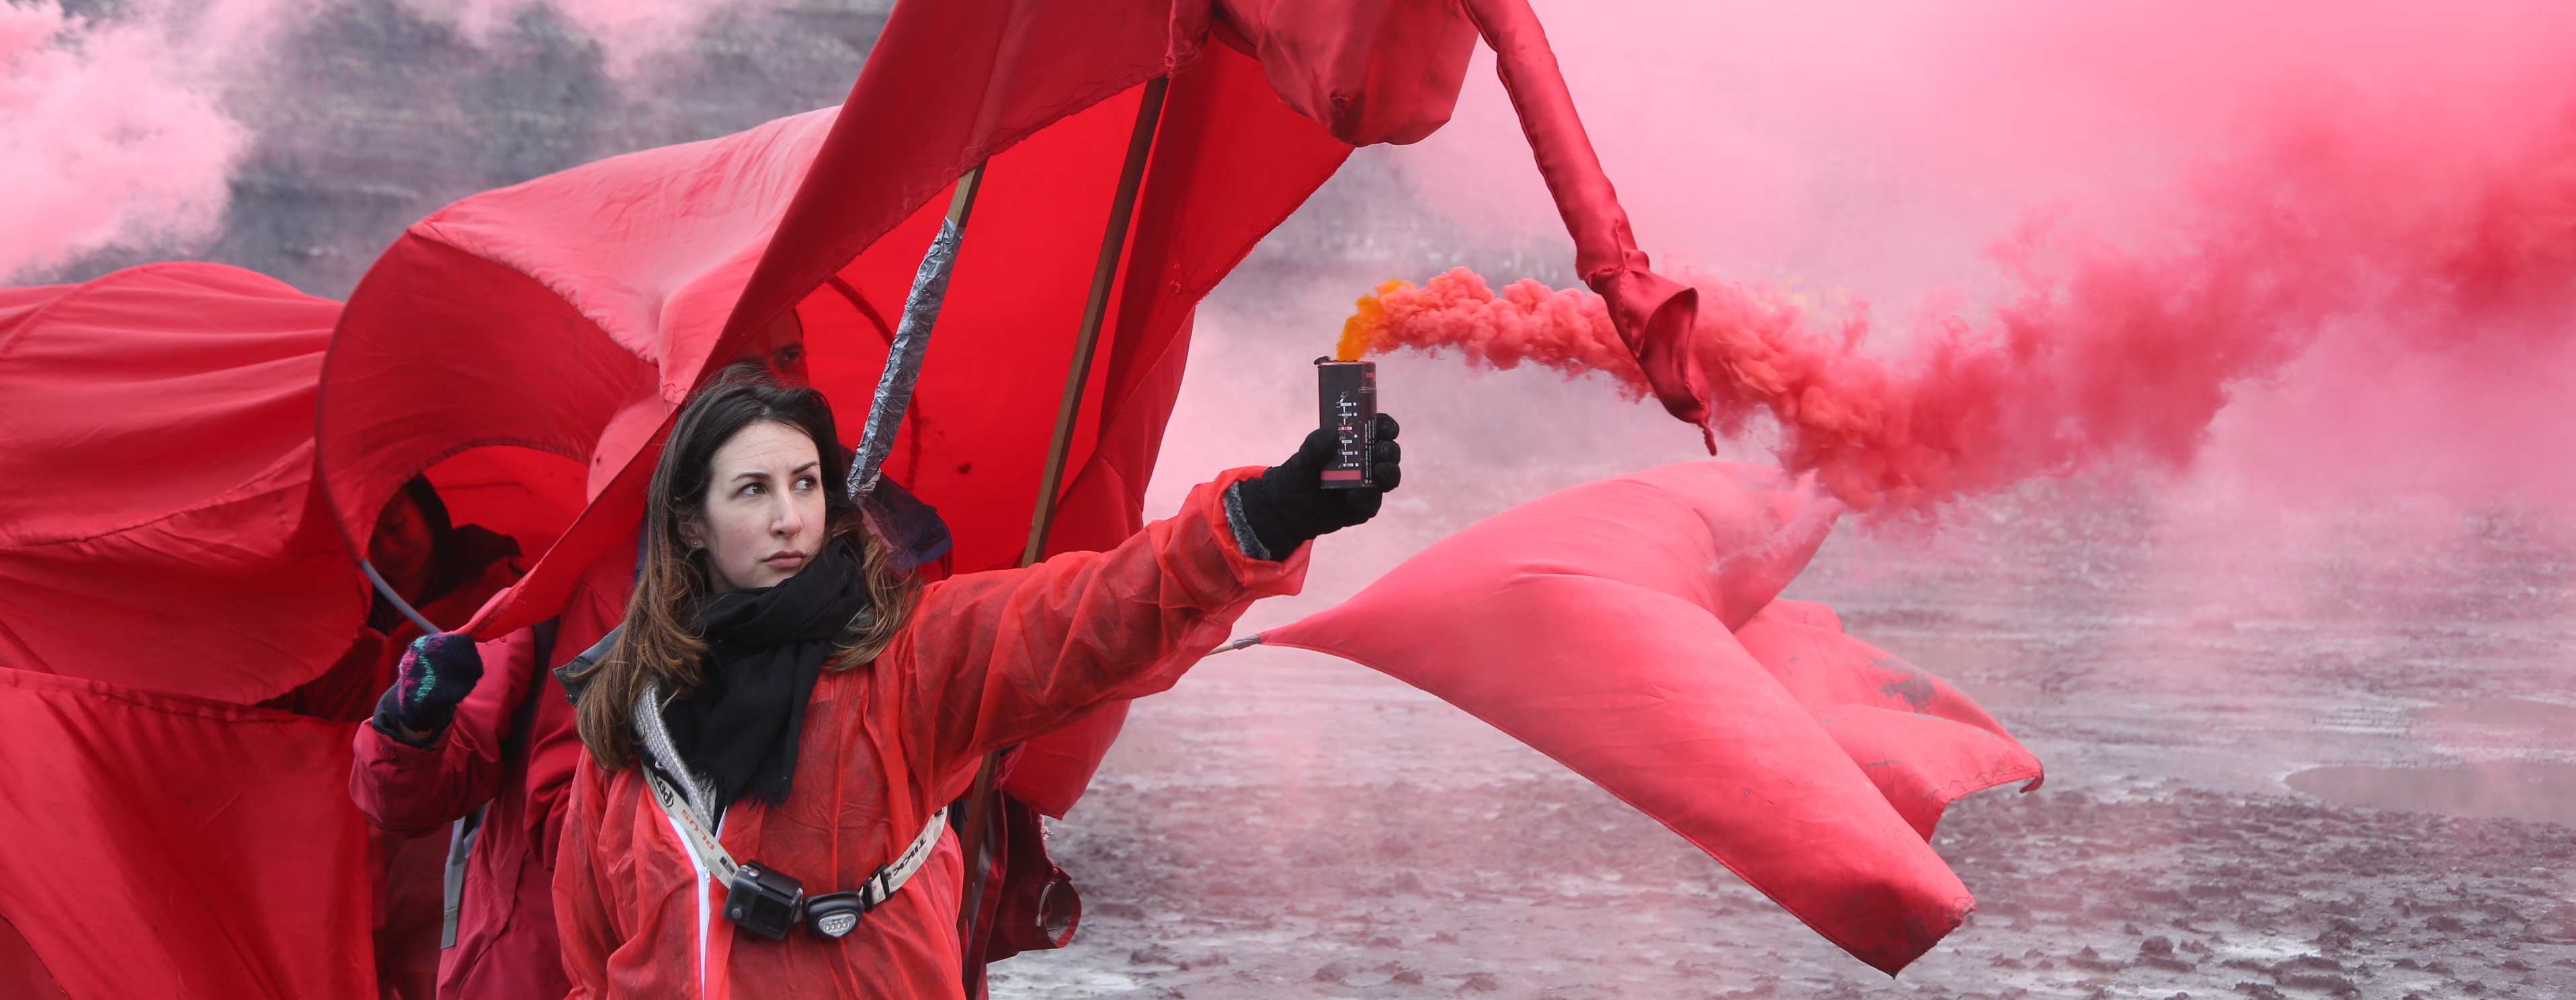 A woman dressed in red looses a canister of red smoke.